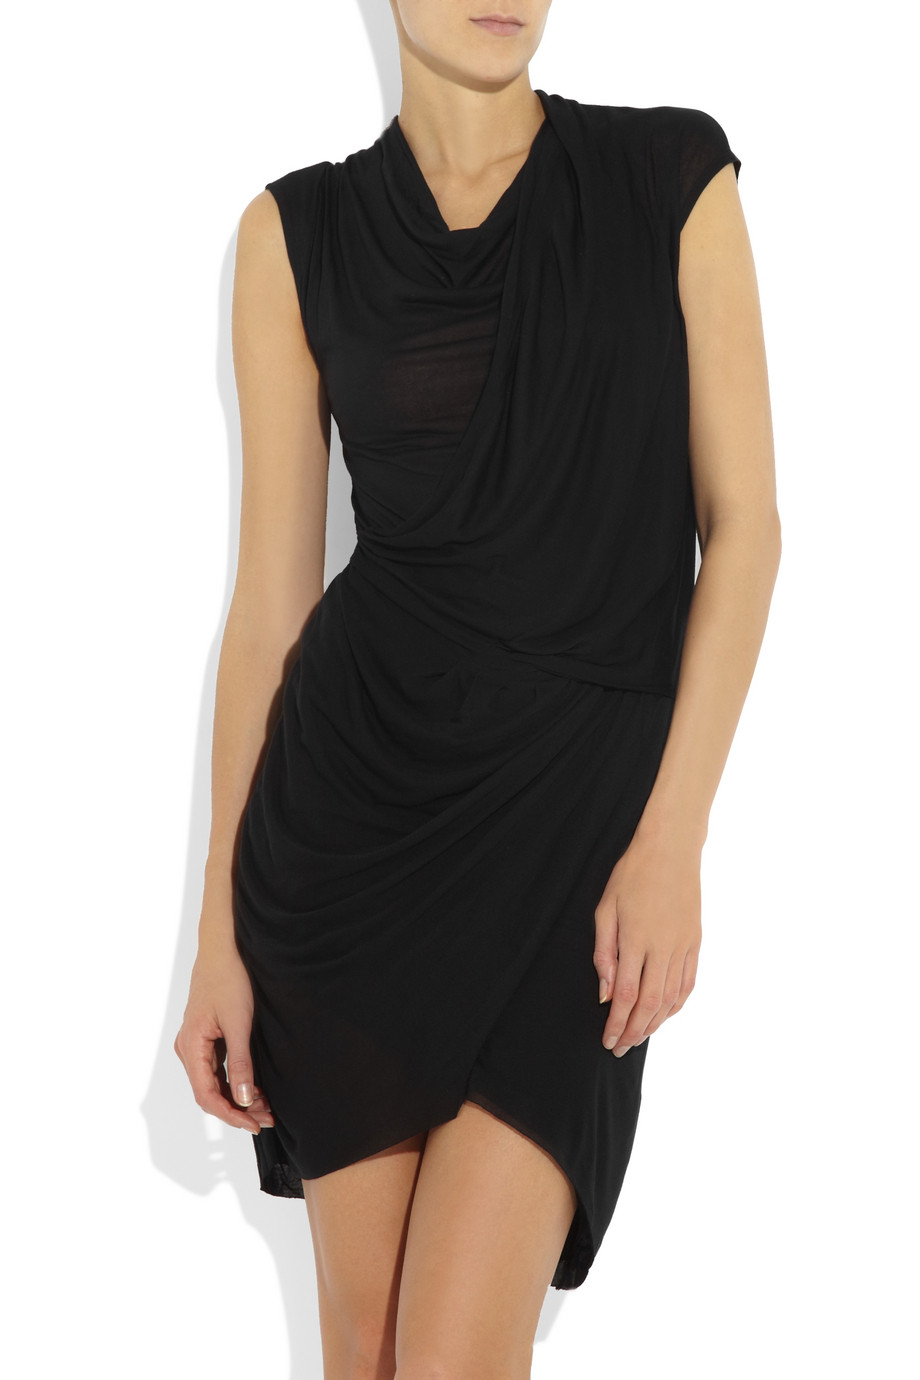 Helmut lang Twisted Draped Jersey Dress in Black | Lyst